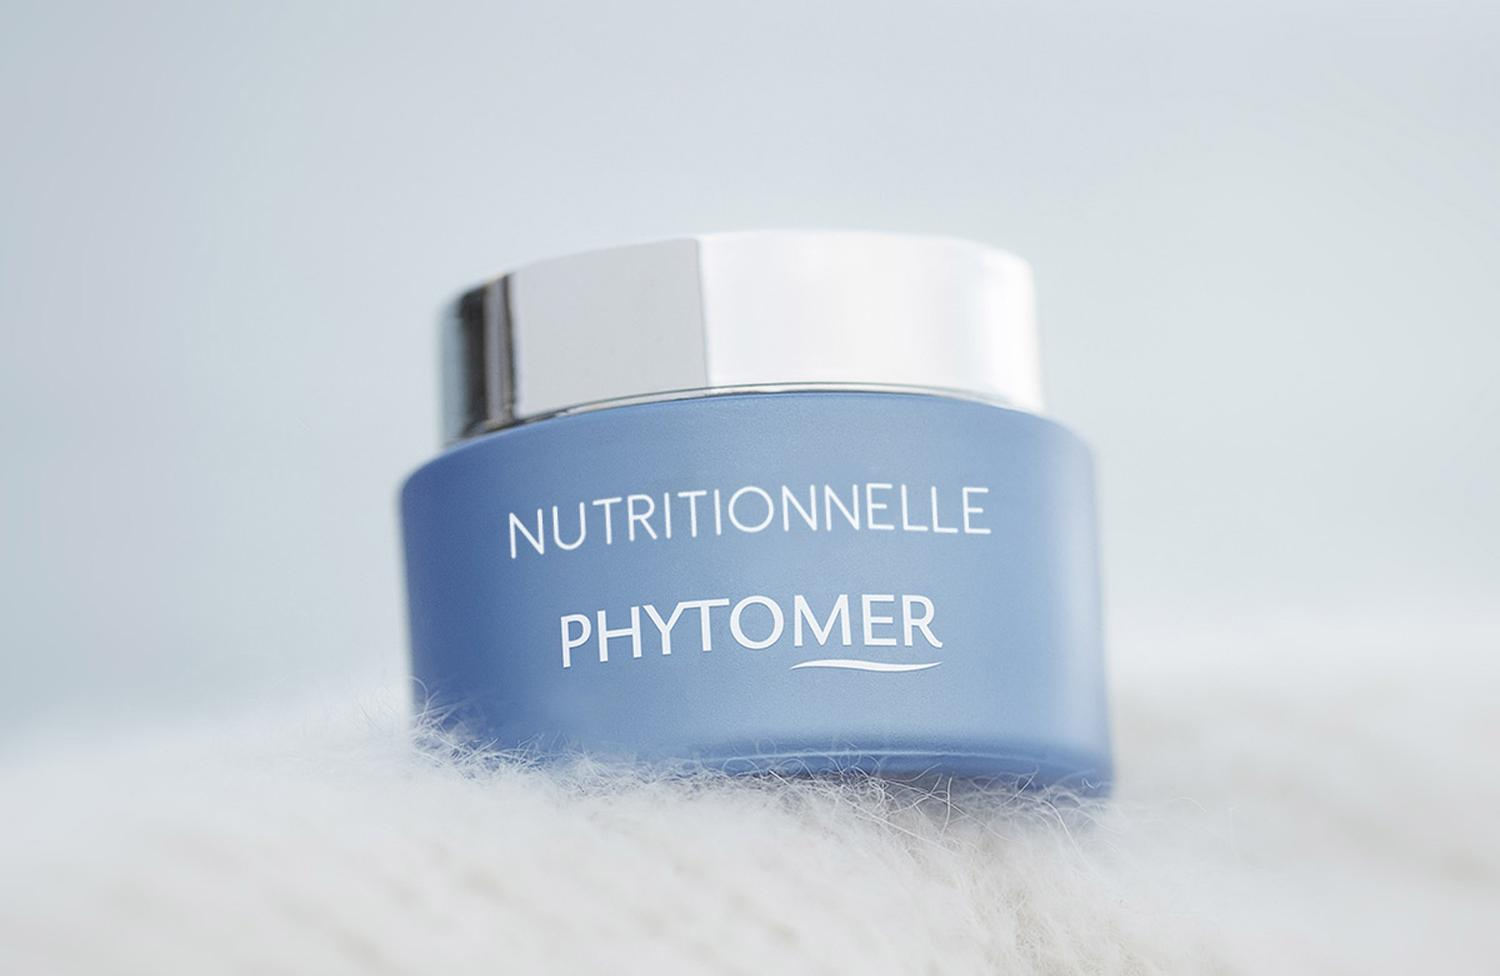 The Nutritionnelle cream is designed to be deeply moisturising and hydrates the epidermis from its deepest layers / Phytomer